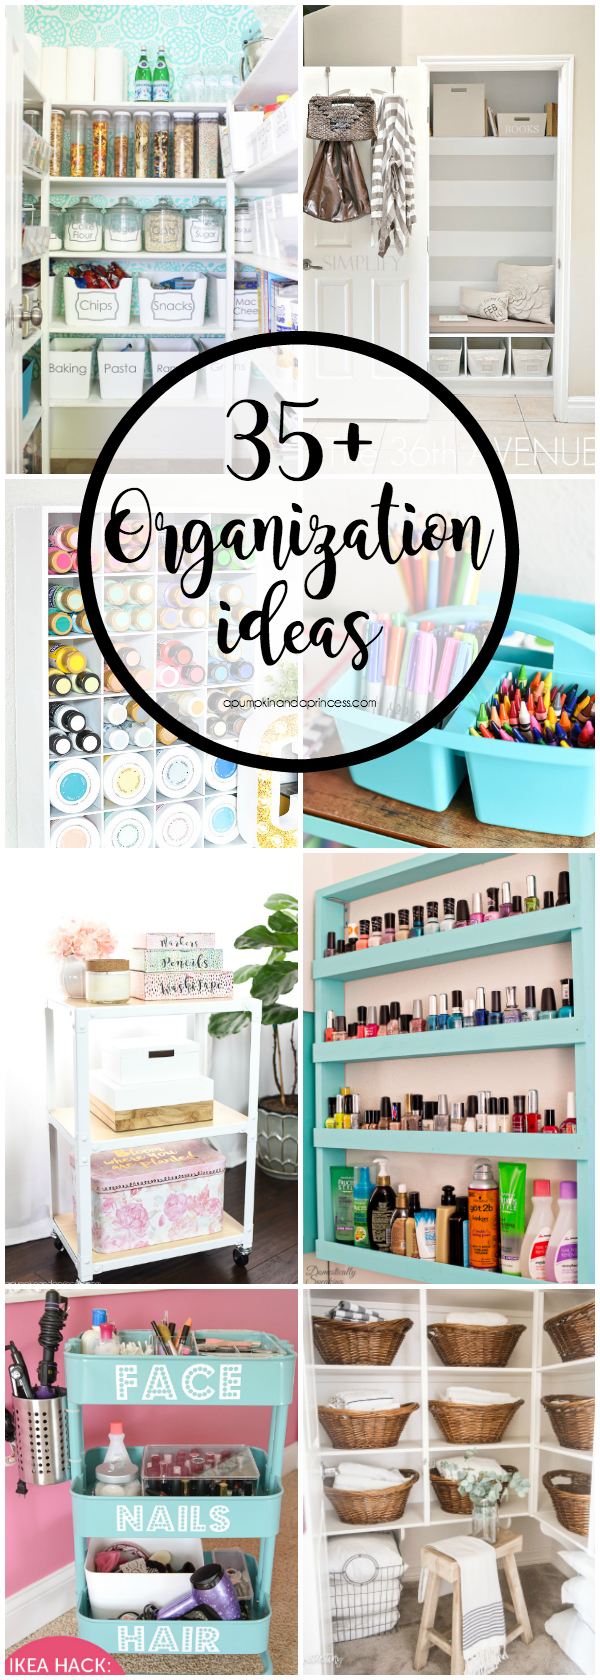 35 Organization Ideas